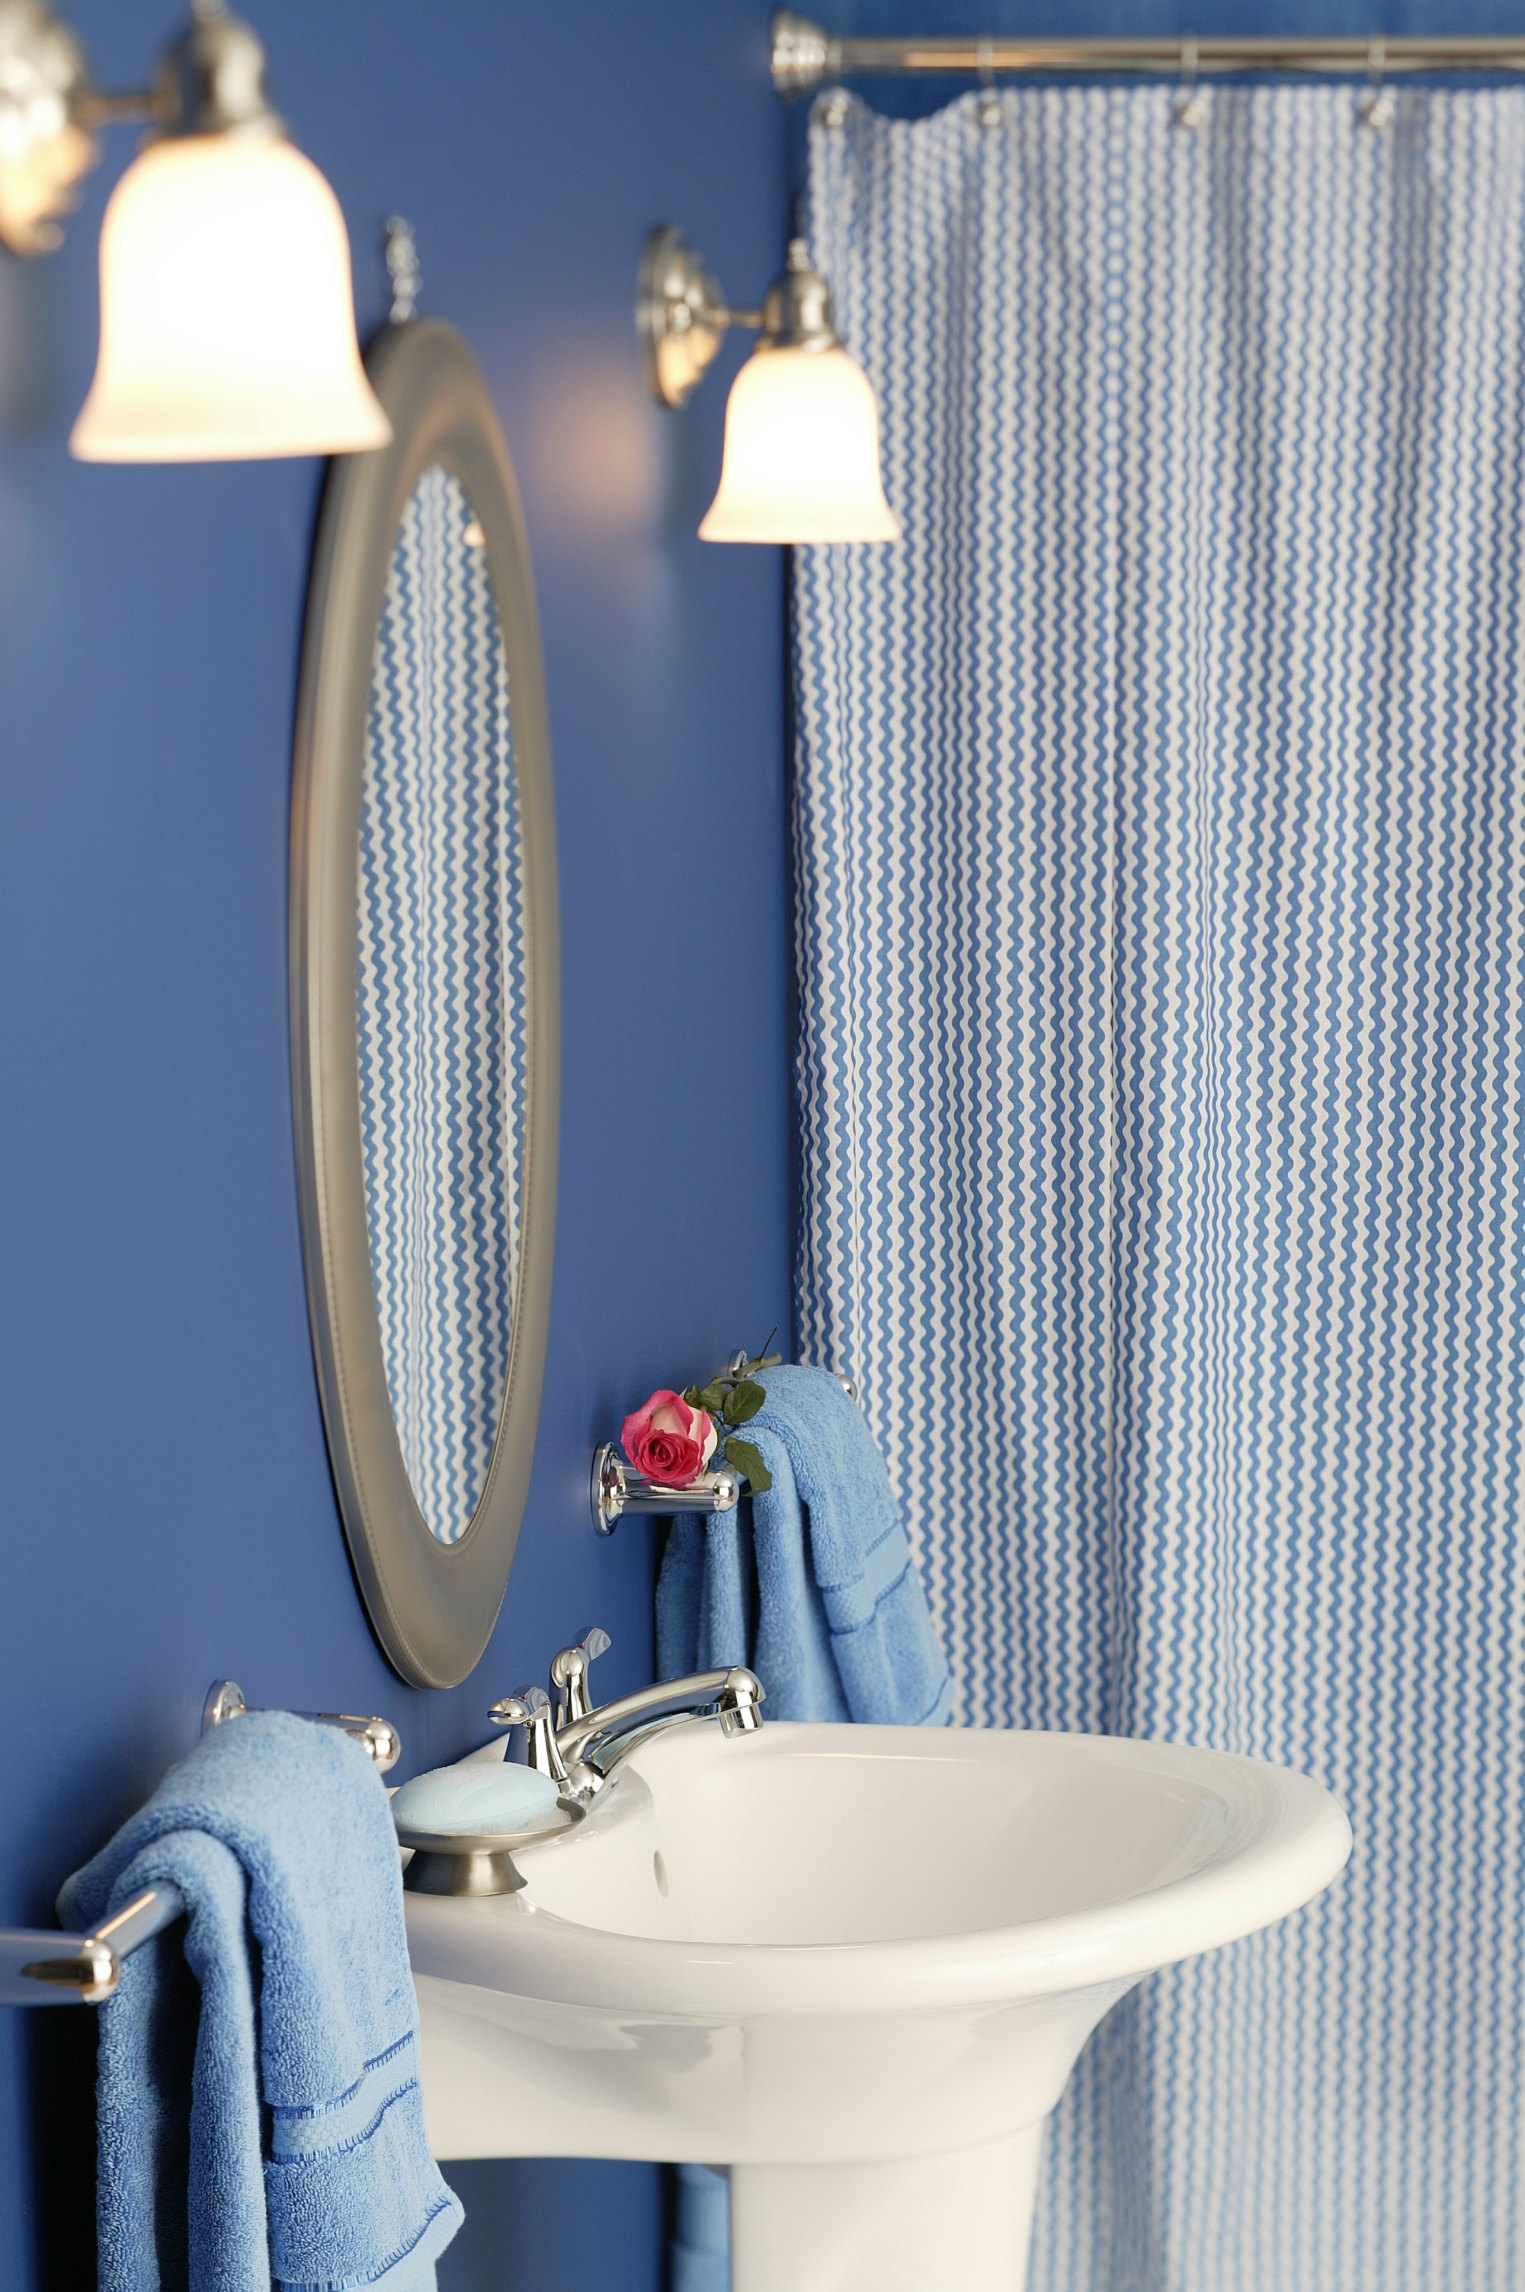 How to Make an L-shaped Shower Curtain Rod | eHow